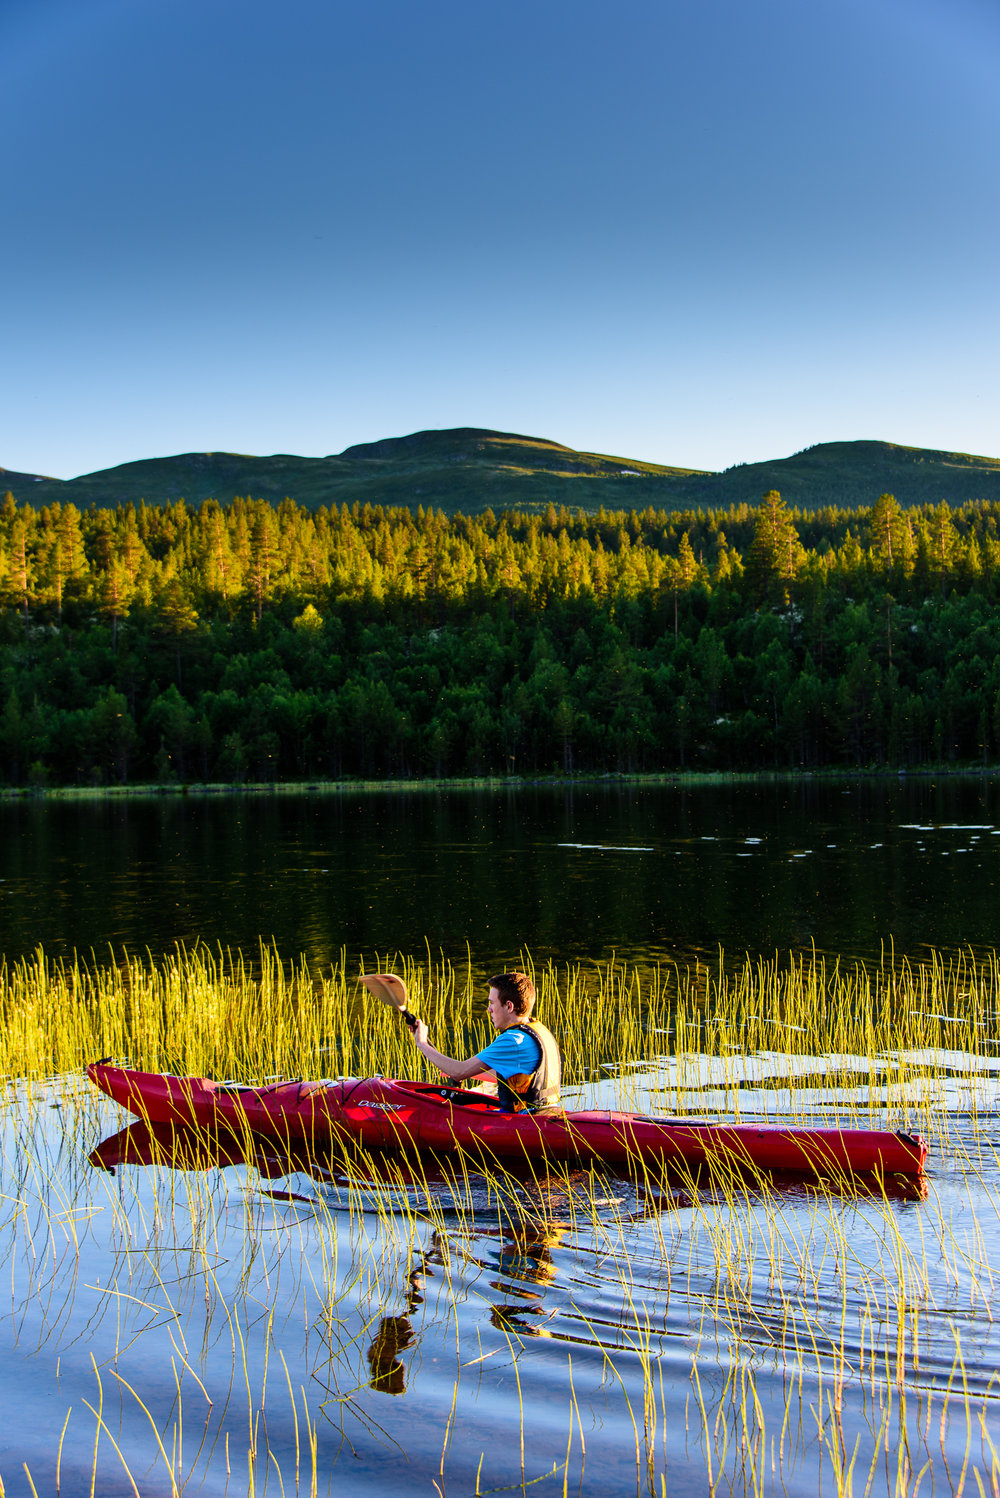 KAYAK AND CANOES AT THE LAKE BELOW Photo: Ian Brodie